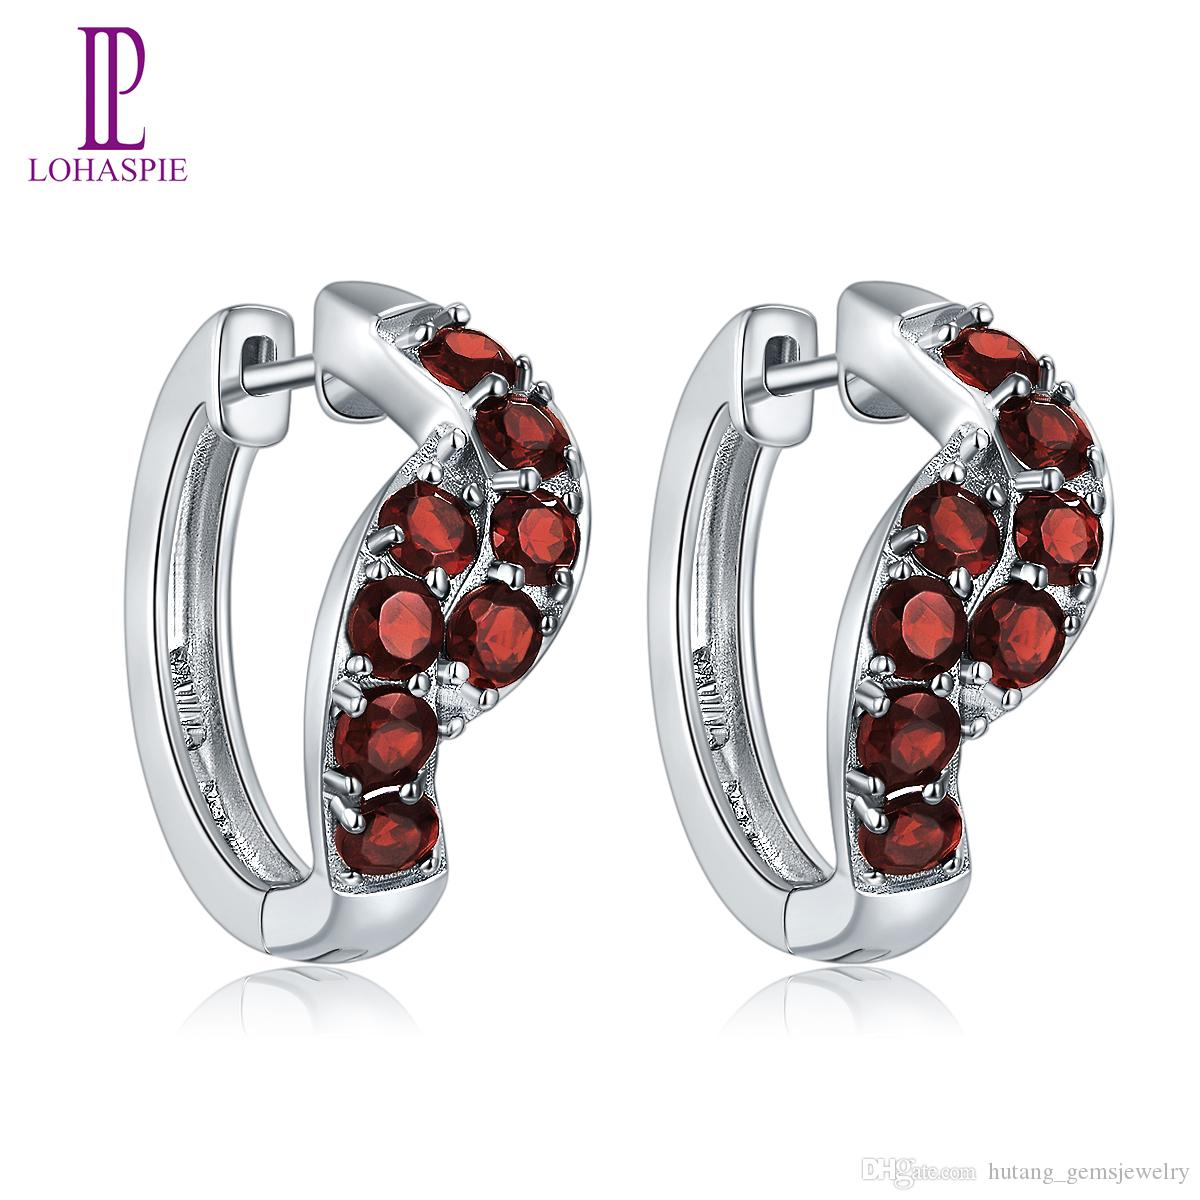 Hoop Huggie Earrings for Women Solid 925 Sterling Silver 2.24ct Natural Gemstone Round Red Garnet Fine Fashion Jewelry White Gold Plated New